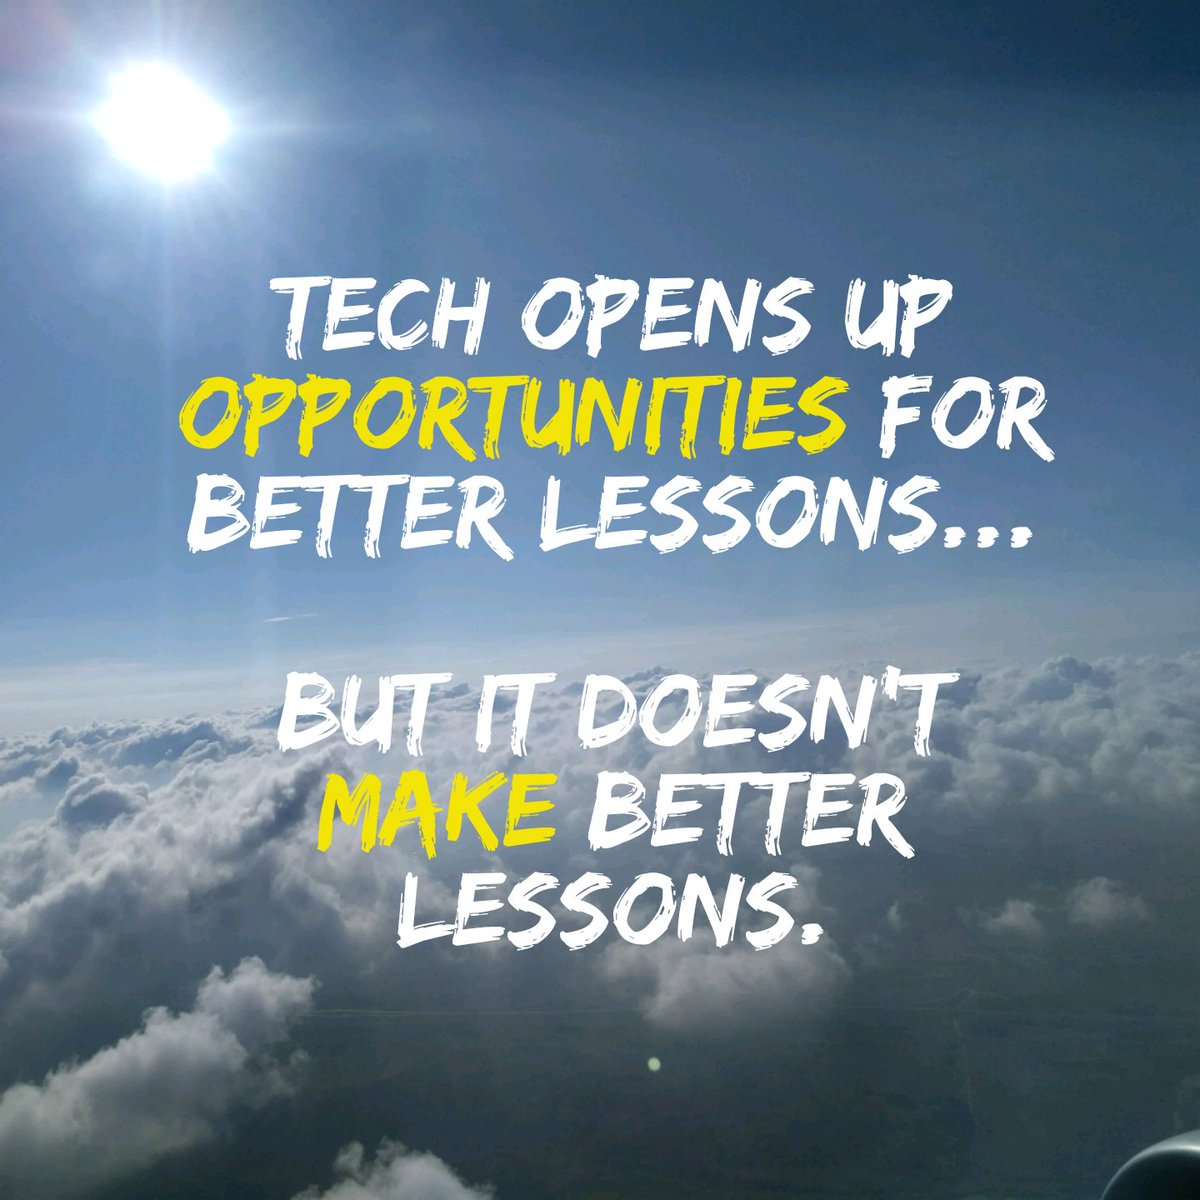 Not hard for an #edtech guy to say this. It's the lesson that matters more than the tool... https://t.co/WemIlmlzdv